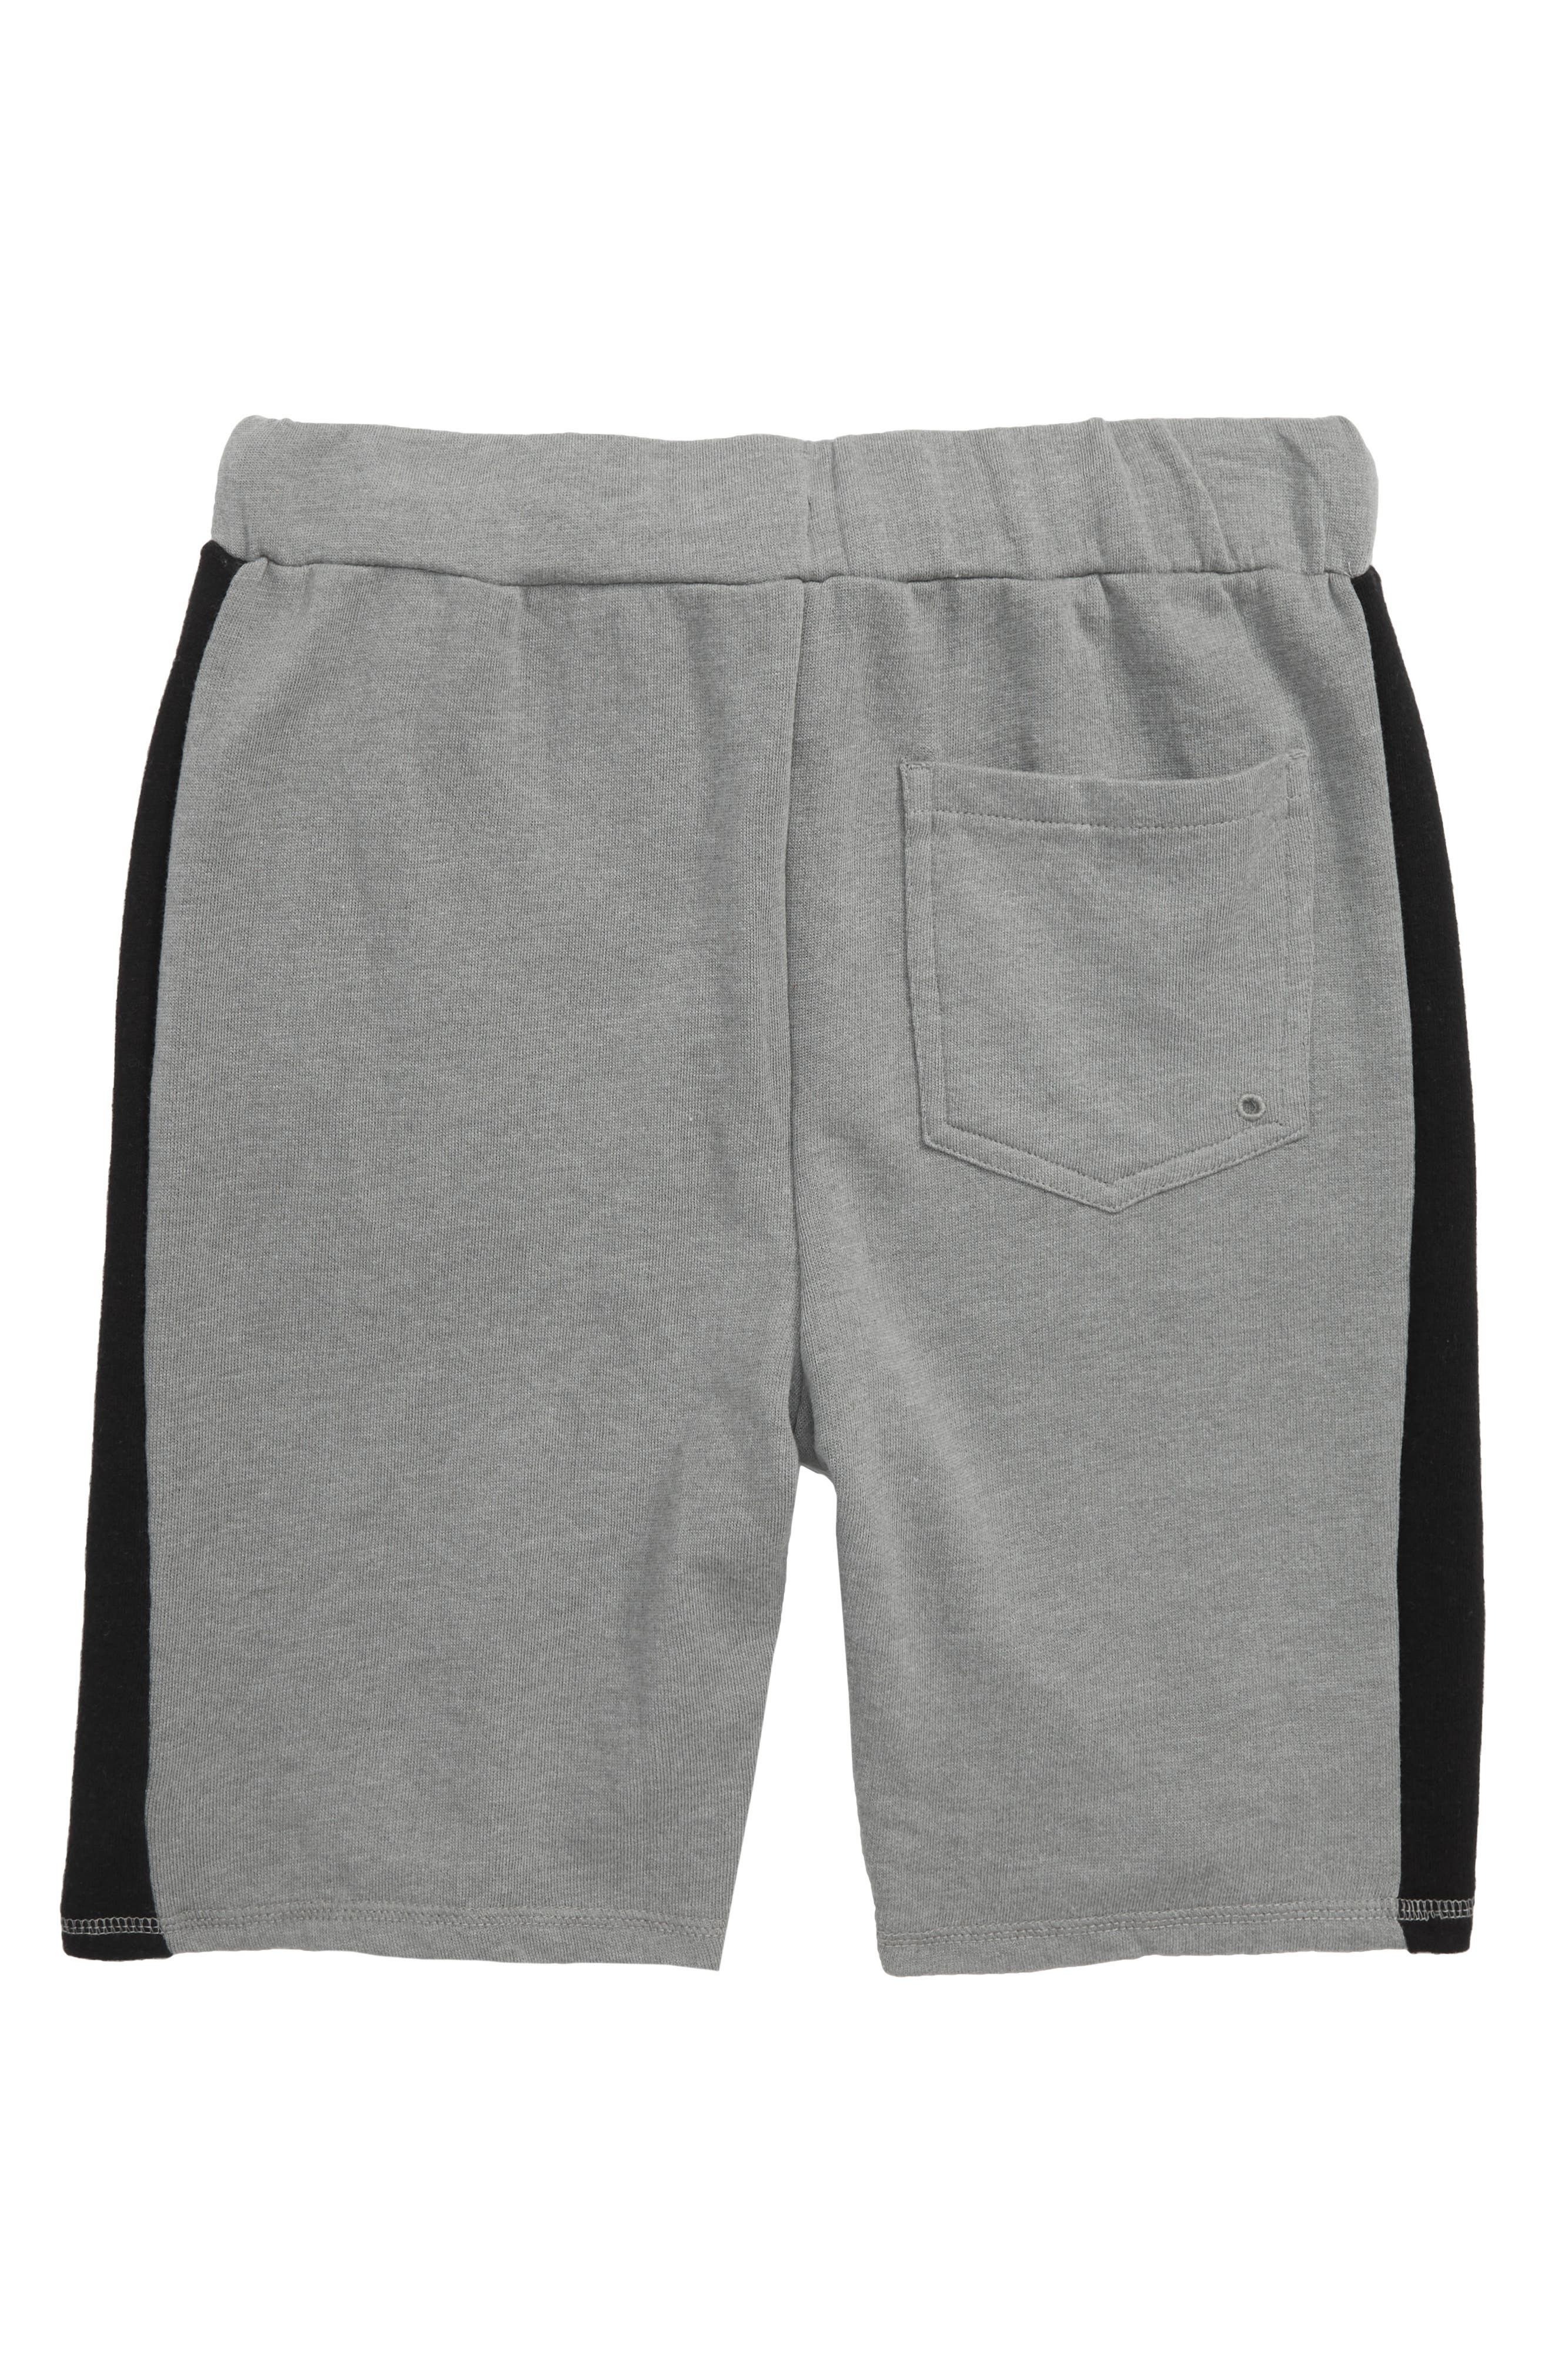 Washed Out Shorts,                             Alternate thumbnail 2, color,                             021